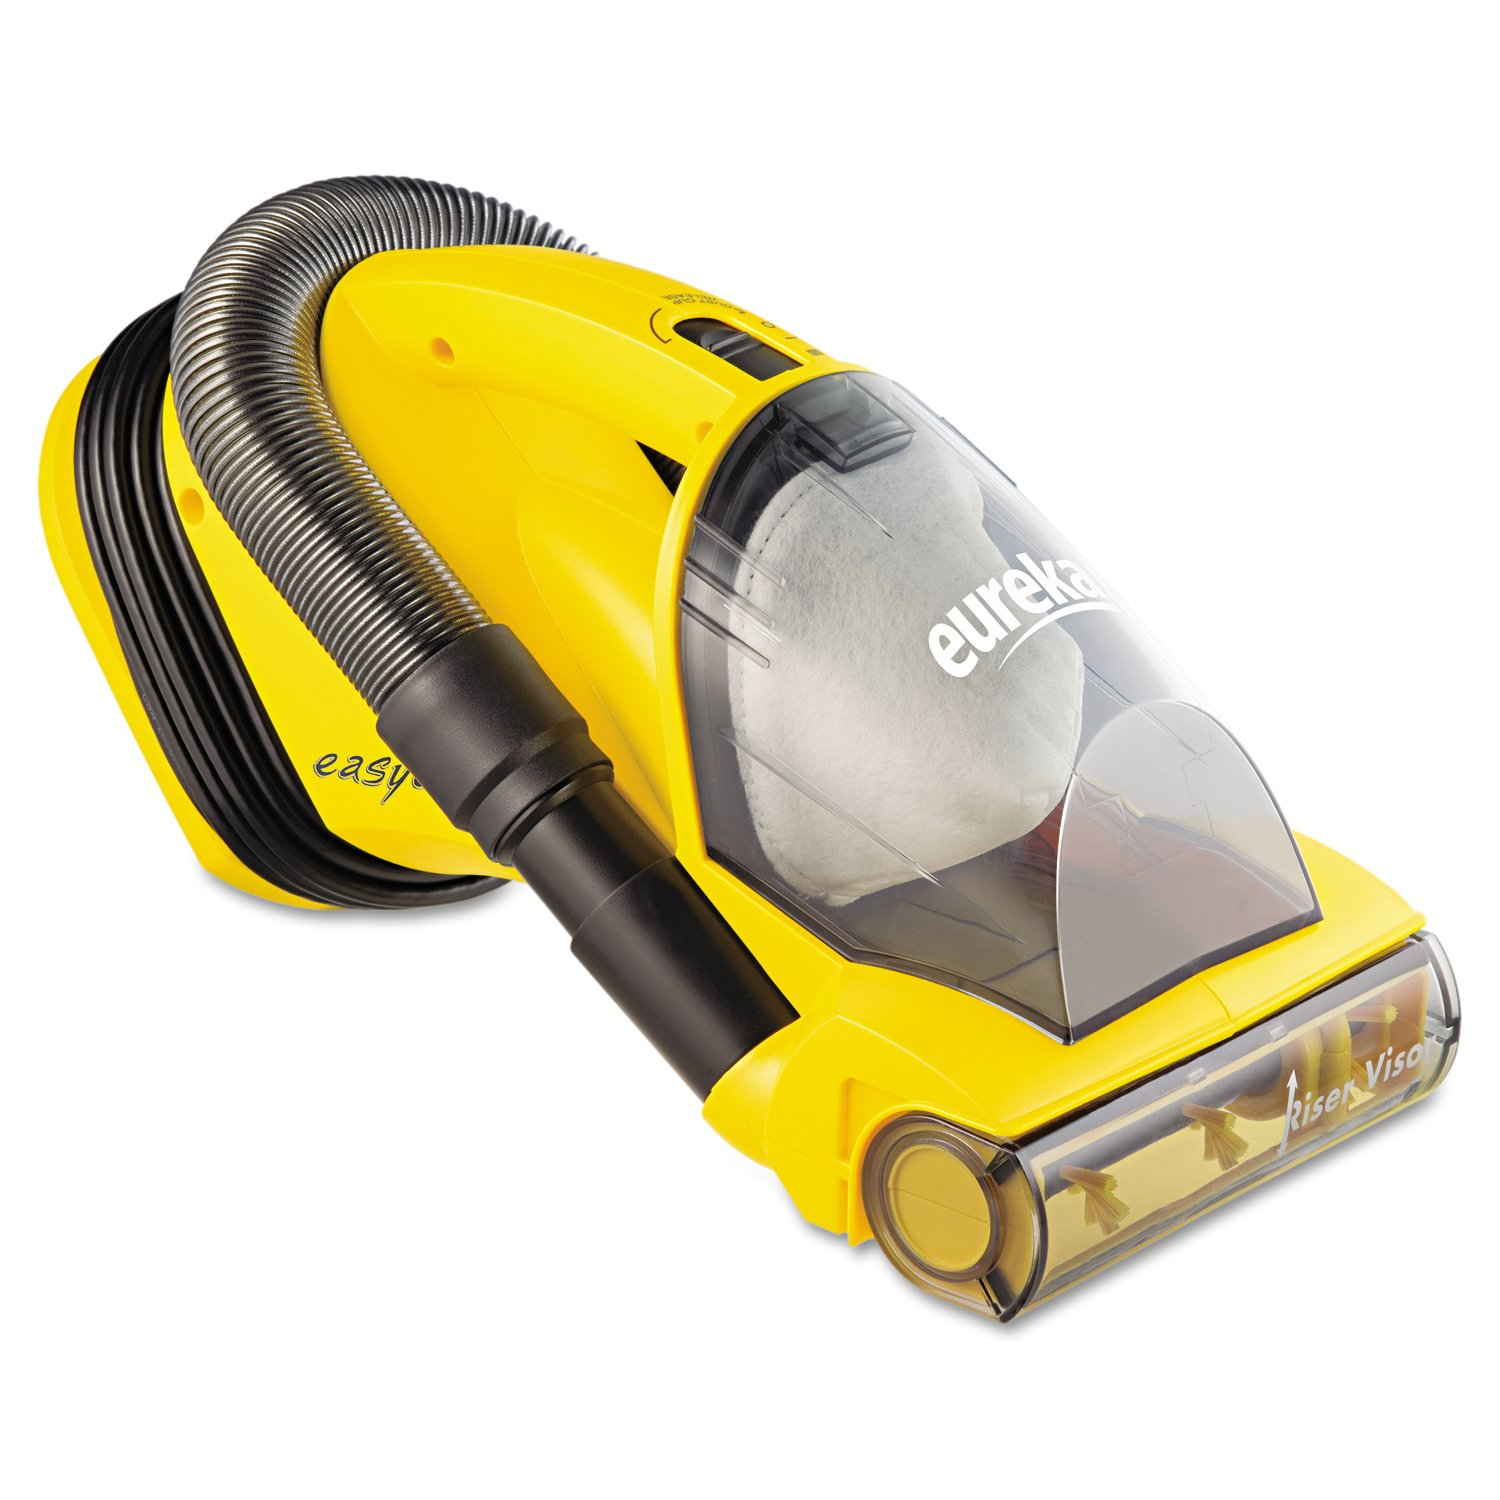 Eureka EasyClean Corded Handheld Vacuum -The Best Handheld Vacuum Cleaner for Stairs